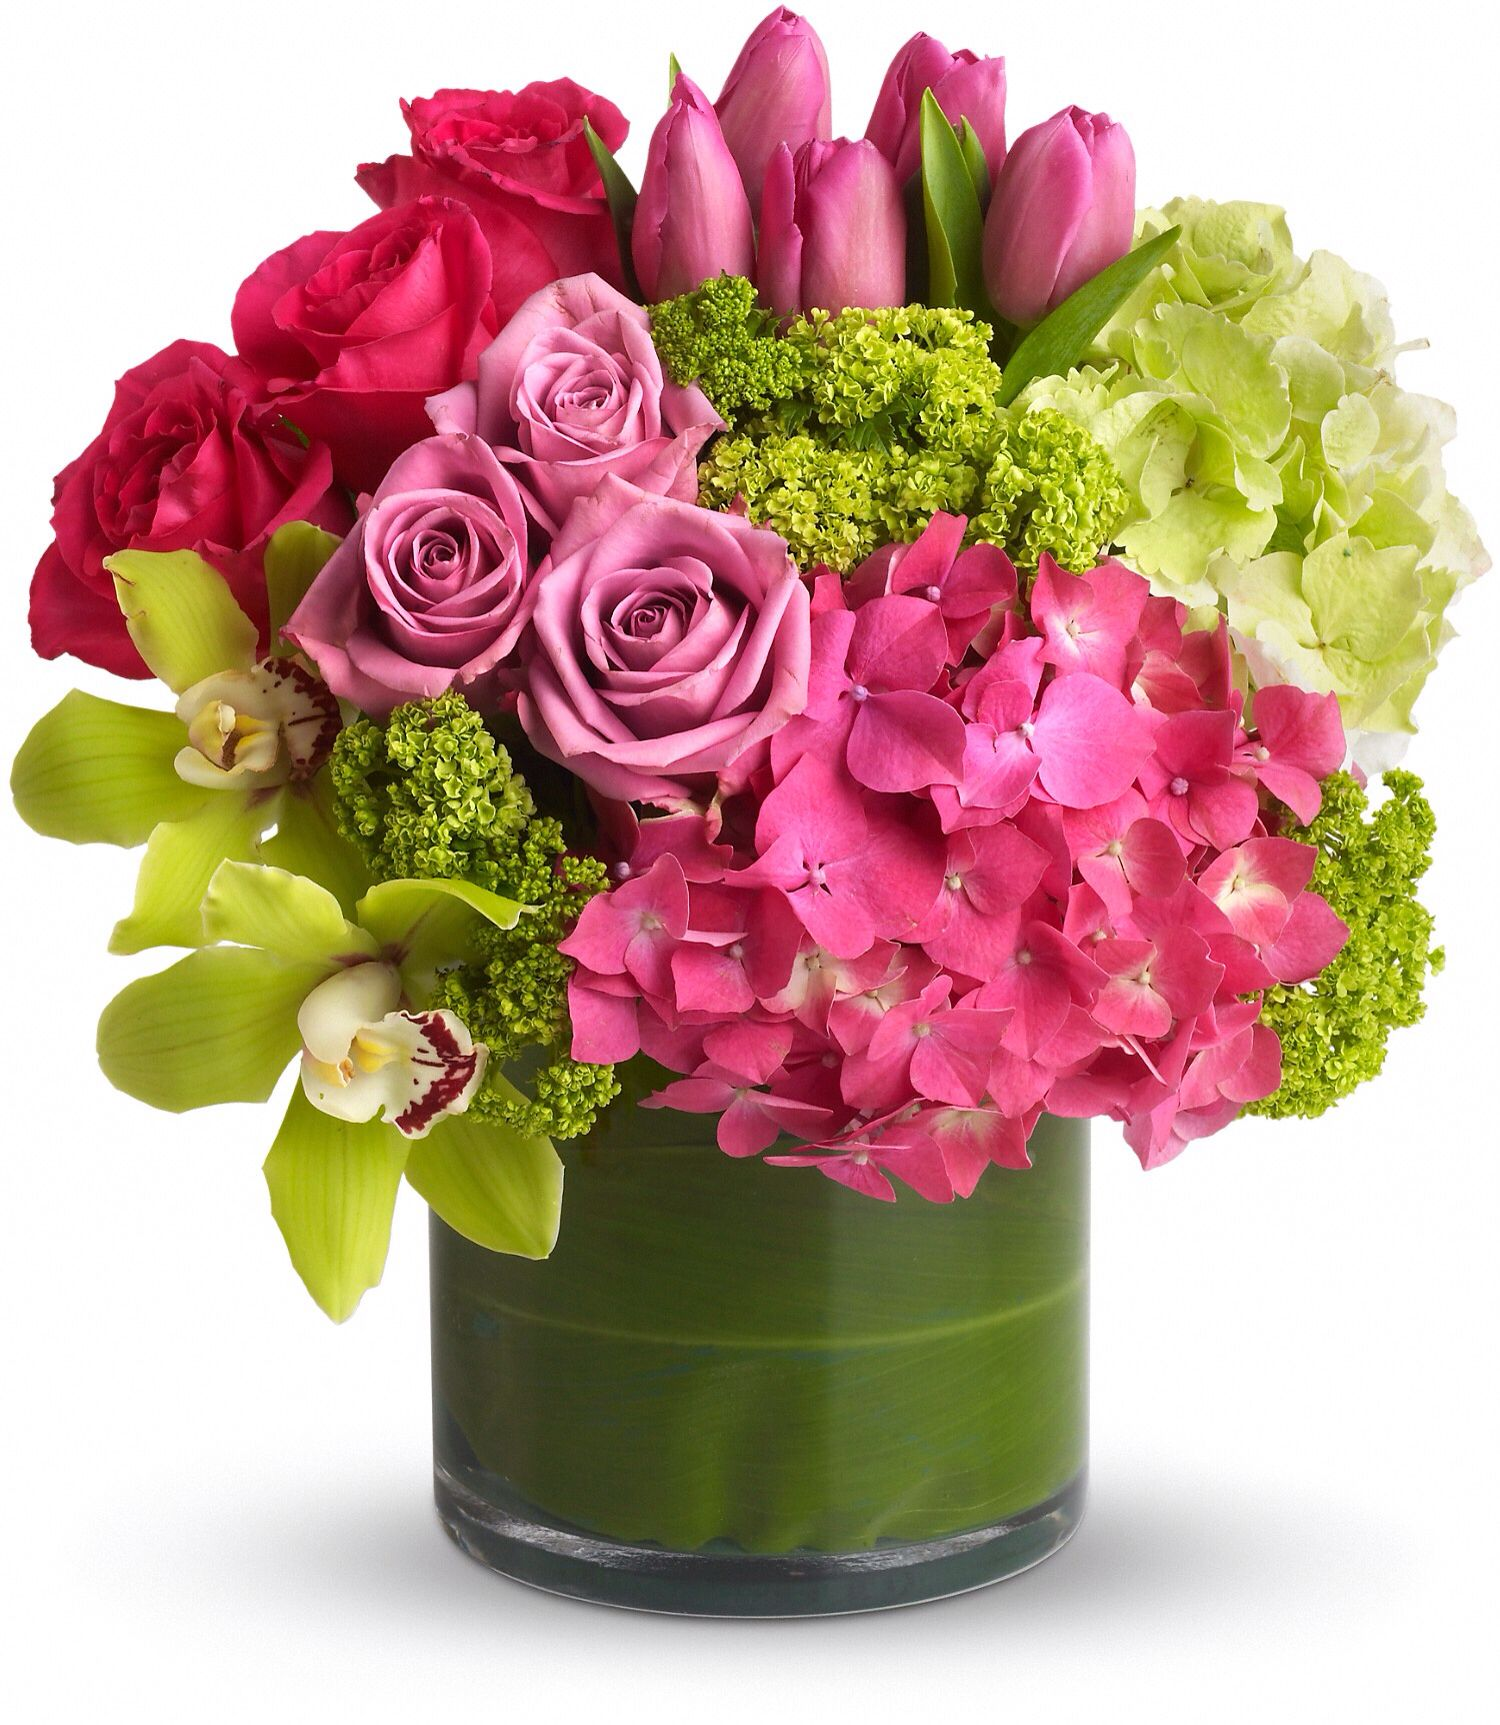 Valentines flowers red pinks chartreuse roses tulips valentines flowers red pinks chartreuse roses tulips hydrangea orchid izmirmasajfo